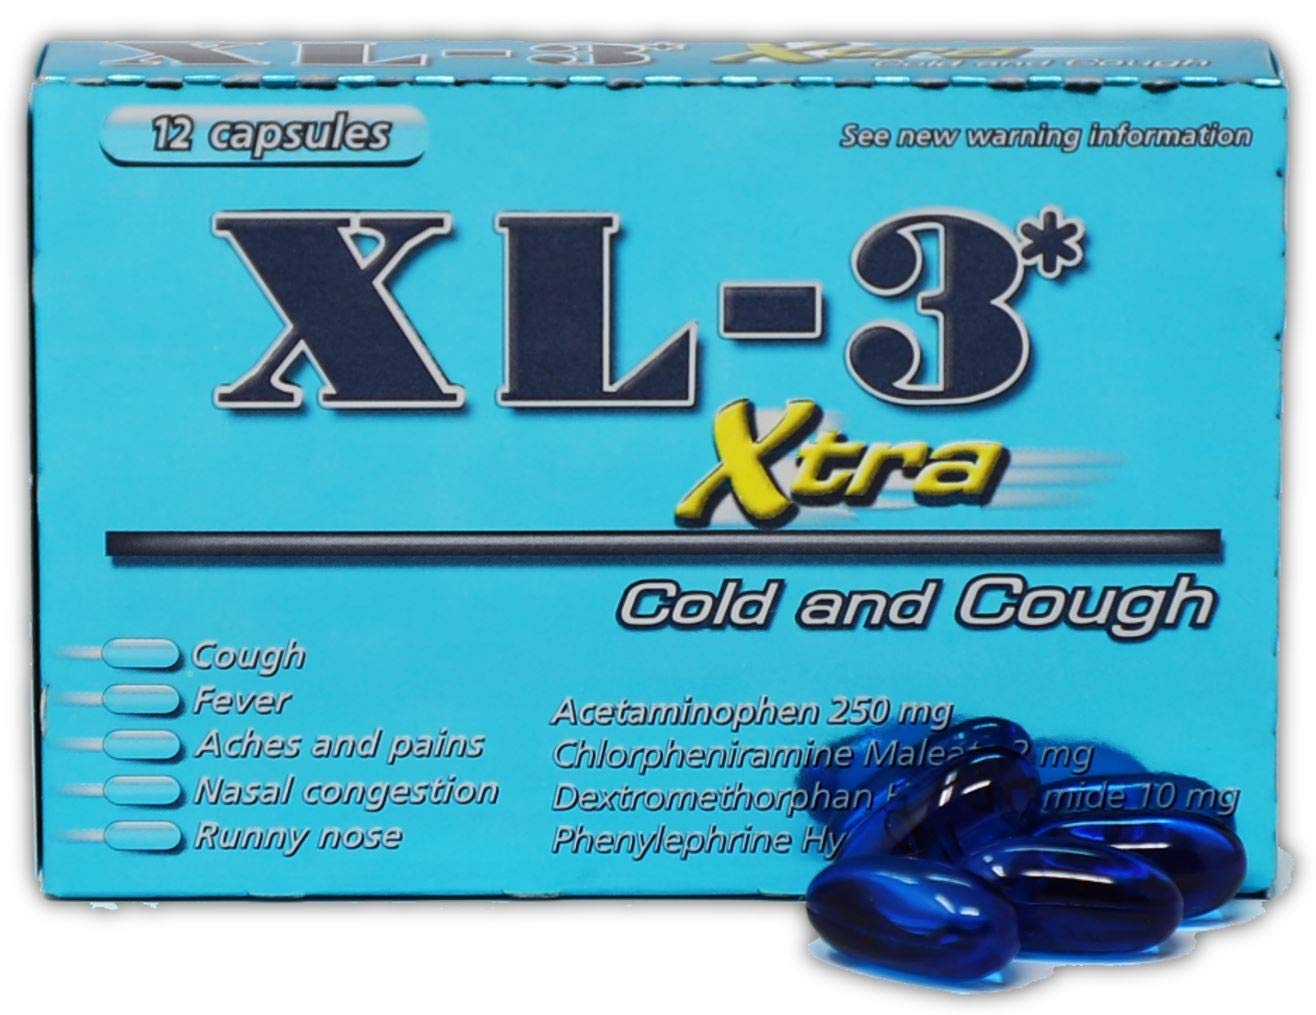 XL-3 Xtra Cold and Cough Medicine | Non-Drowsy Fast Acting Strong Cough and Cold Symptom Relief of Cough, Fever, Nasal Congestion, Sneezing, Aches and Pains; 12 Capsules